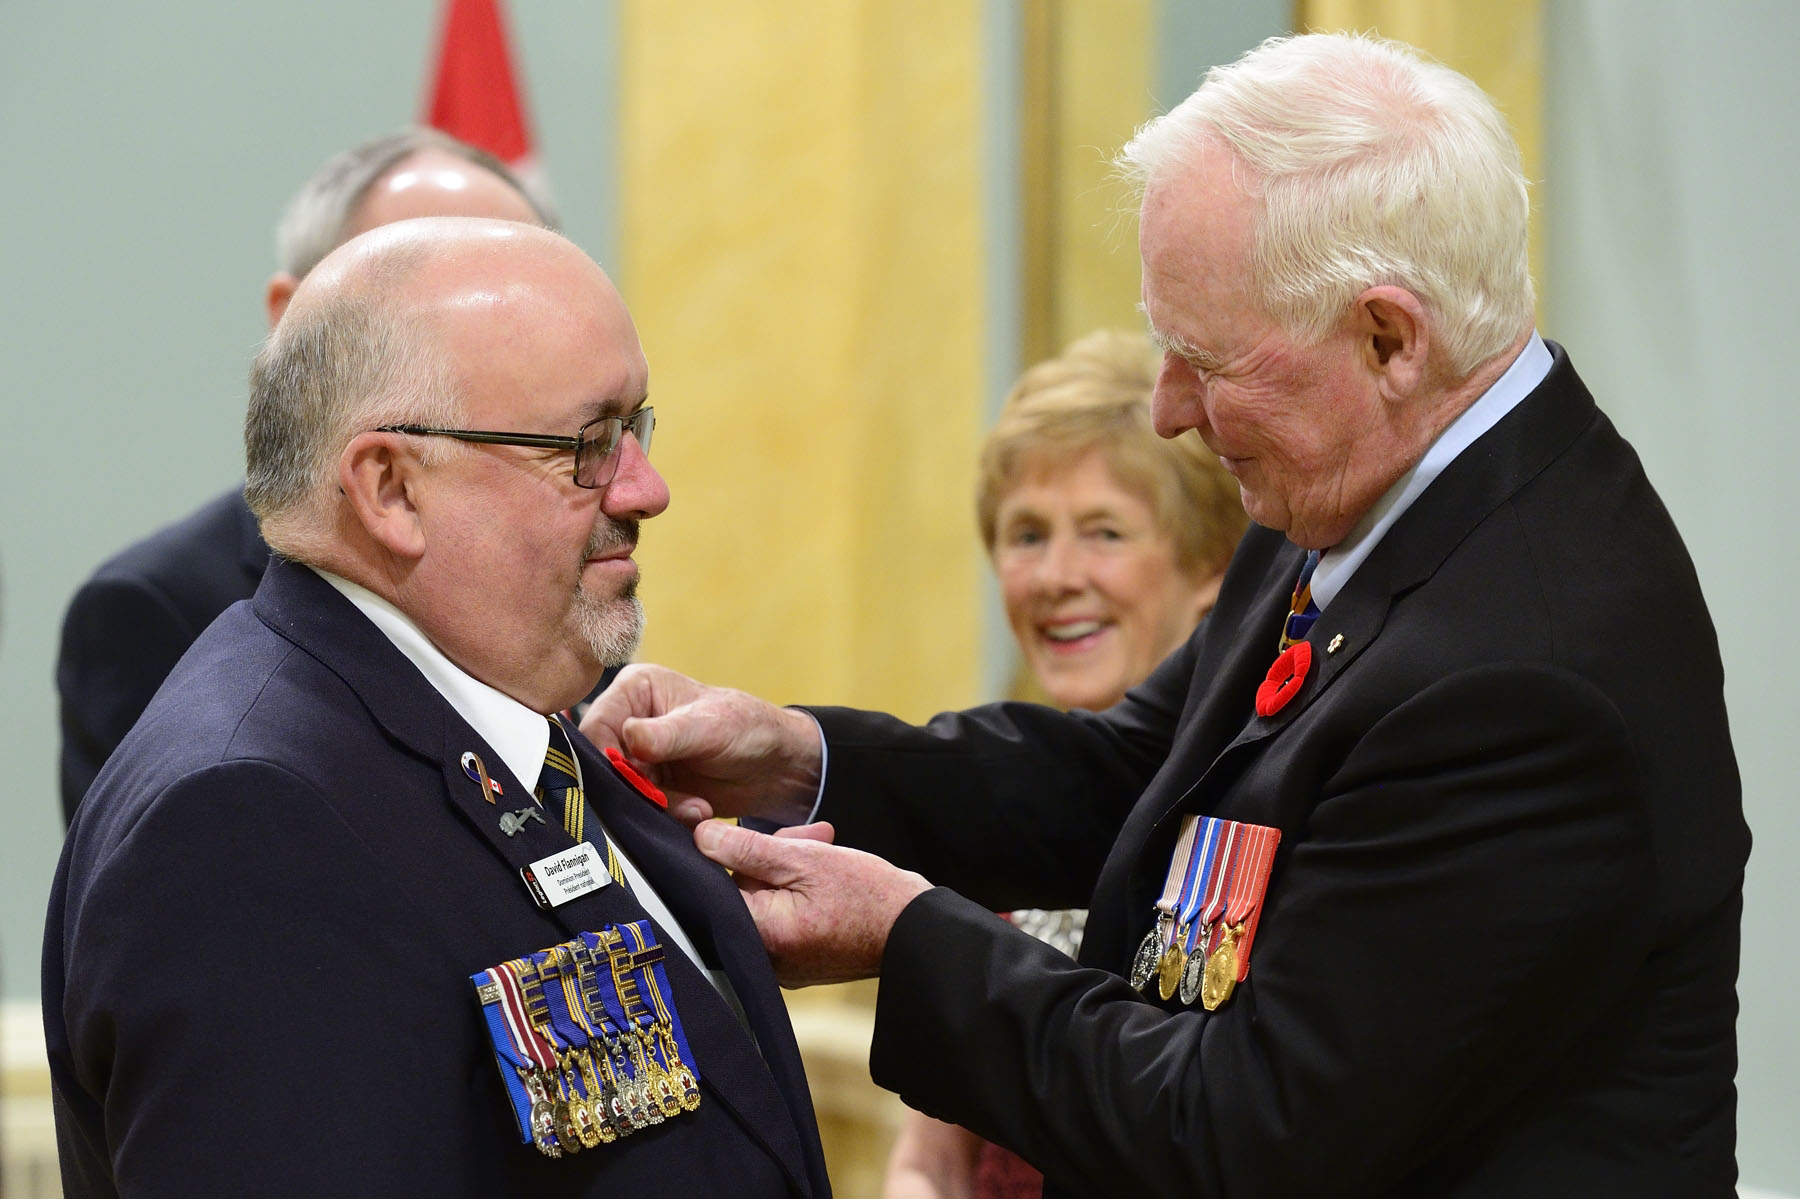 After receiving the first symbolic poppy of the campaign from Mr. David Flannigan, Dominion President of The Royal Canadian Legion, the Governor General presented a poppy to M. Flannigan in turn.